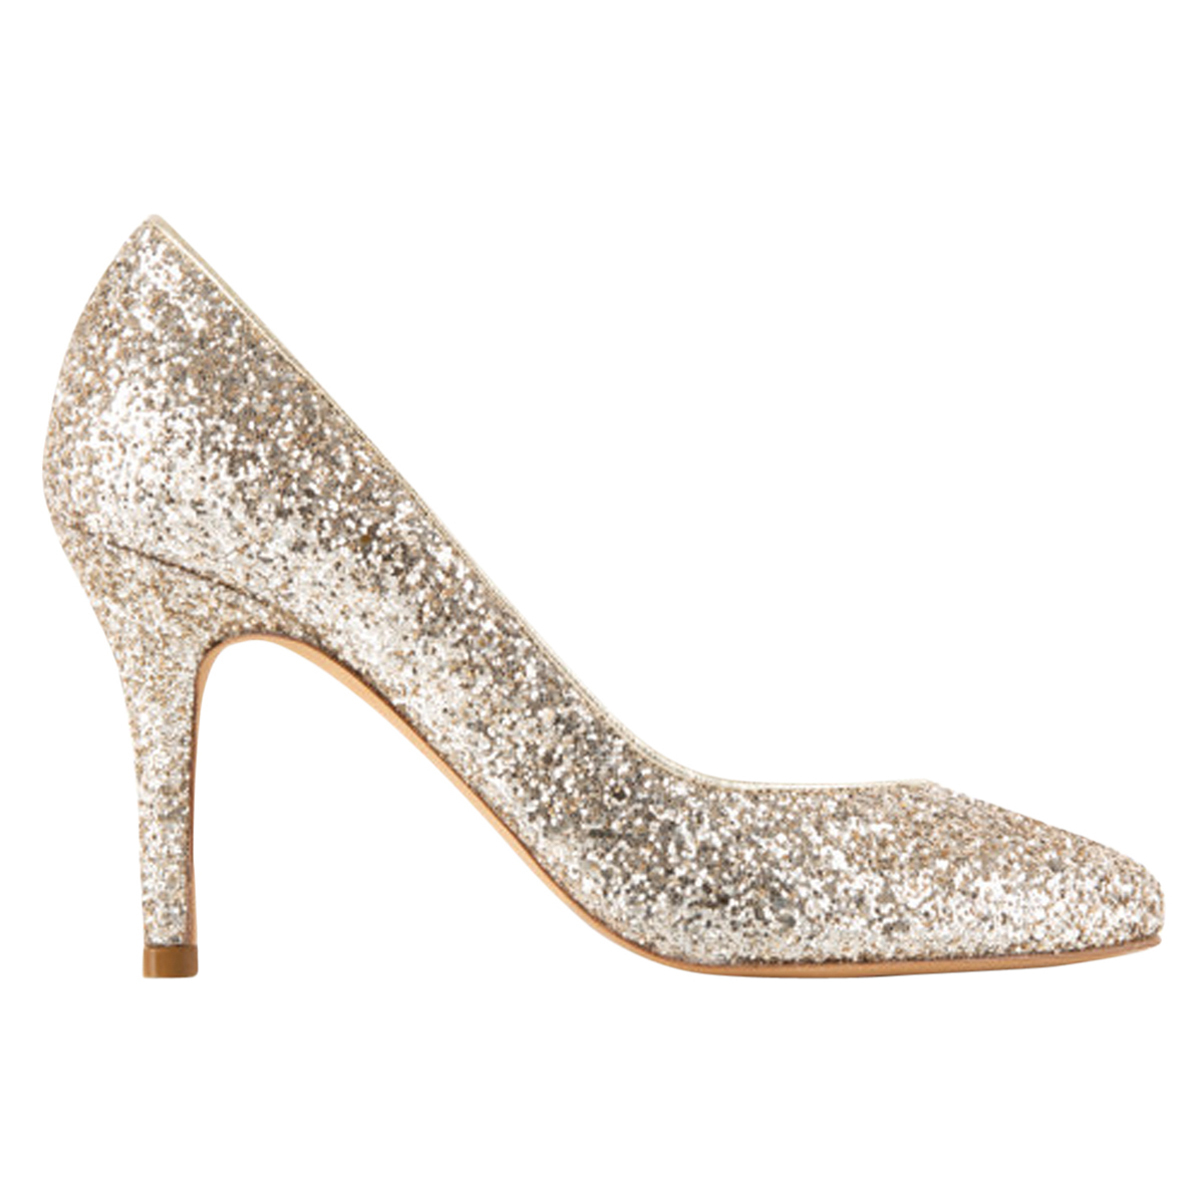 Sequinned Leather Court Shoes L Dazzling L L'é